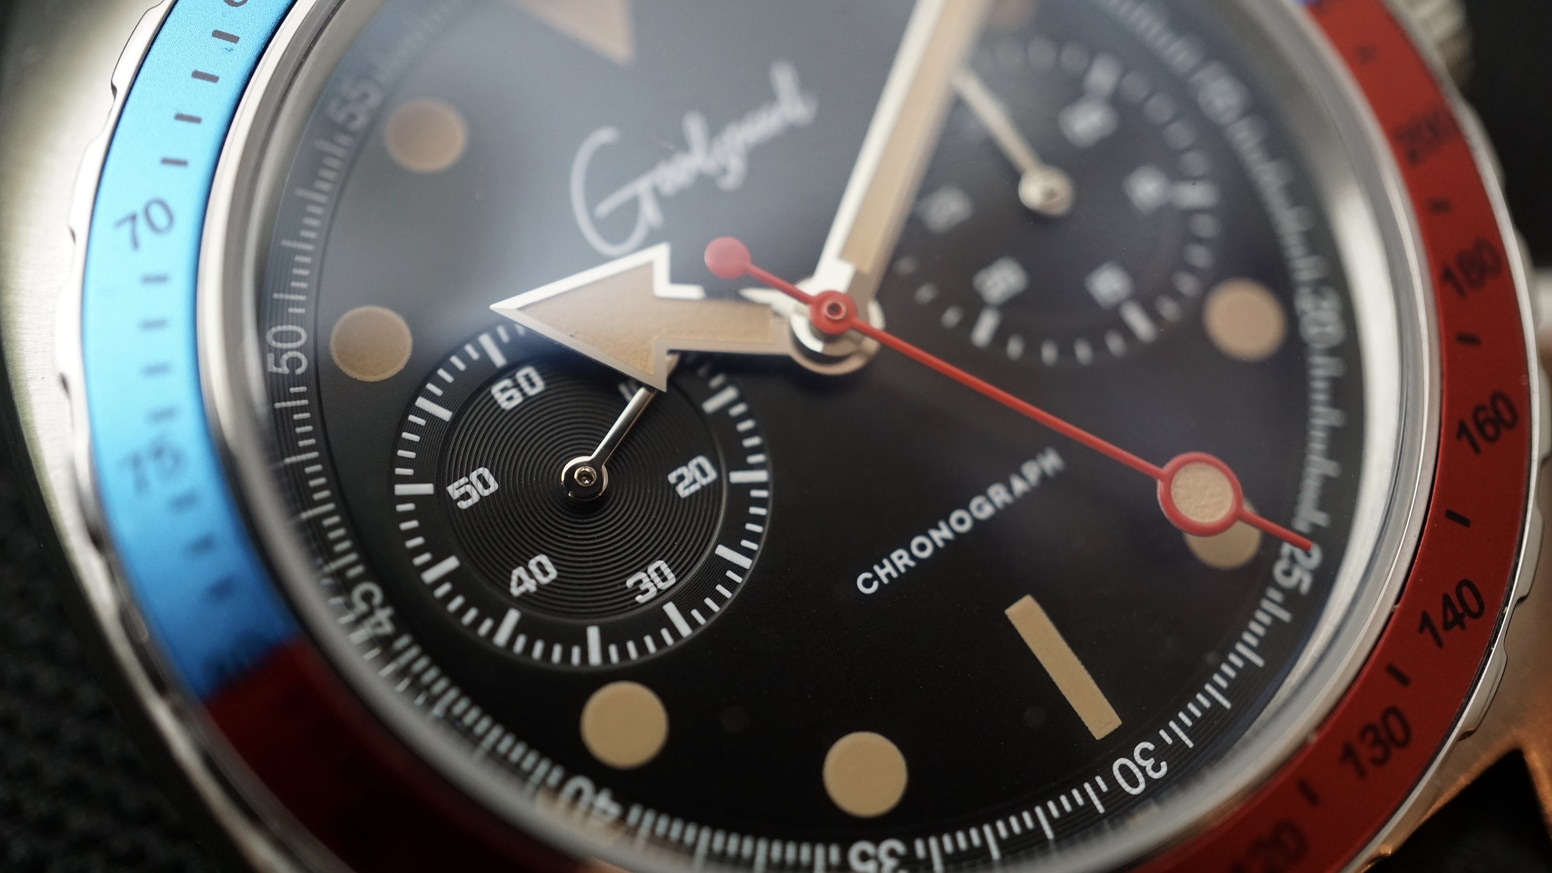 The Goodspeed Sonoma is a vintage styled watch with modern components at an affordable price.